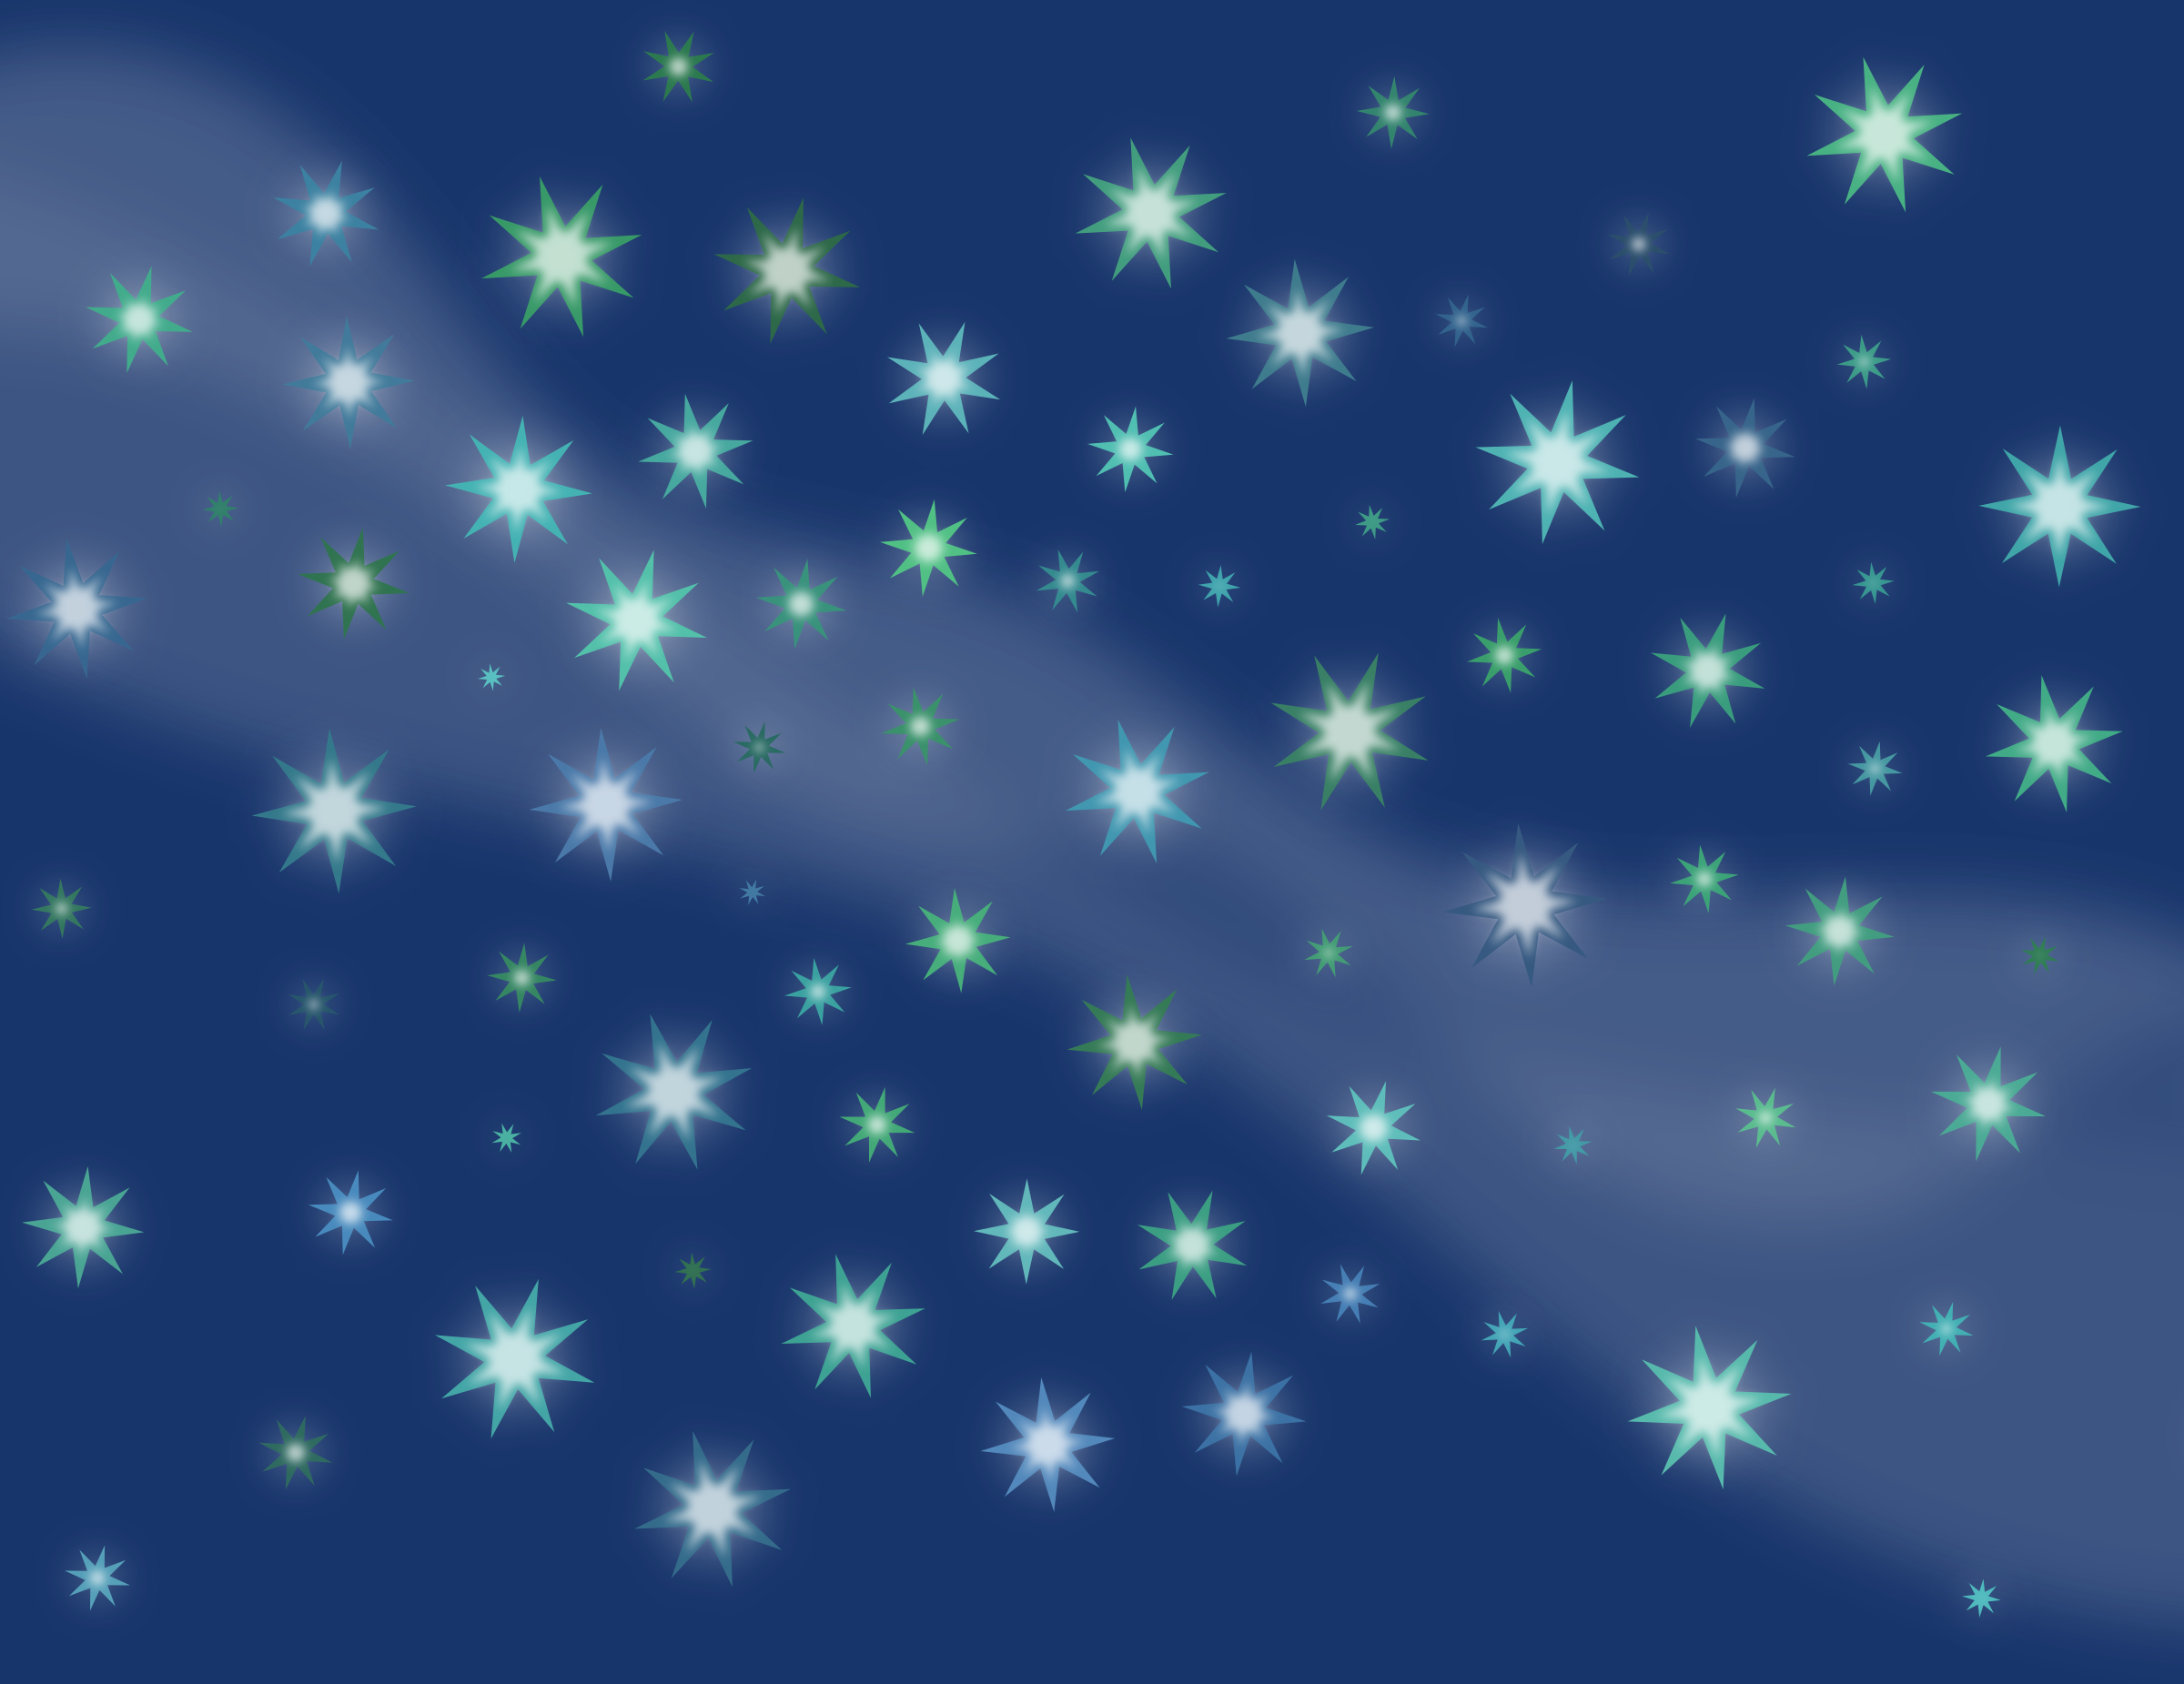 Starry Sky clipart #3, Download drawings